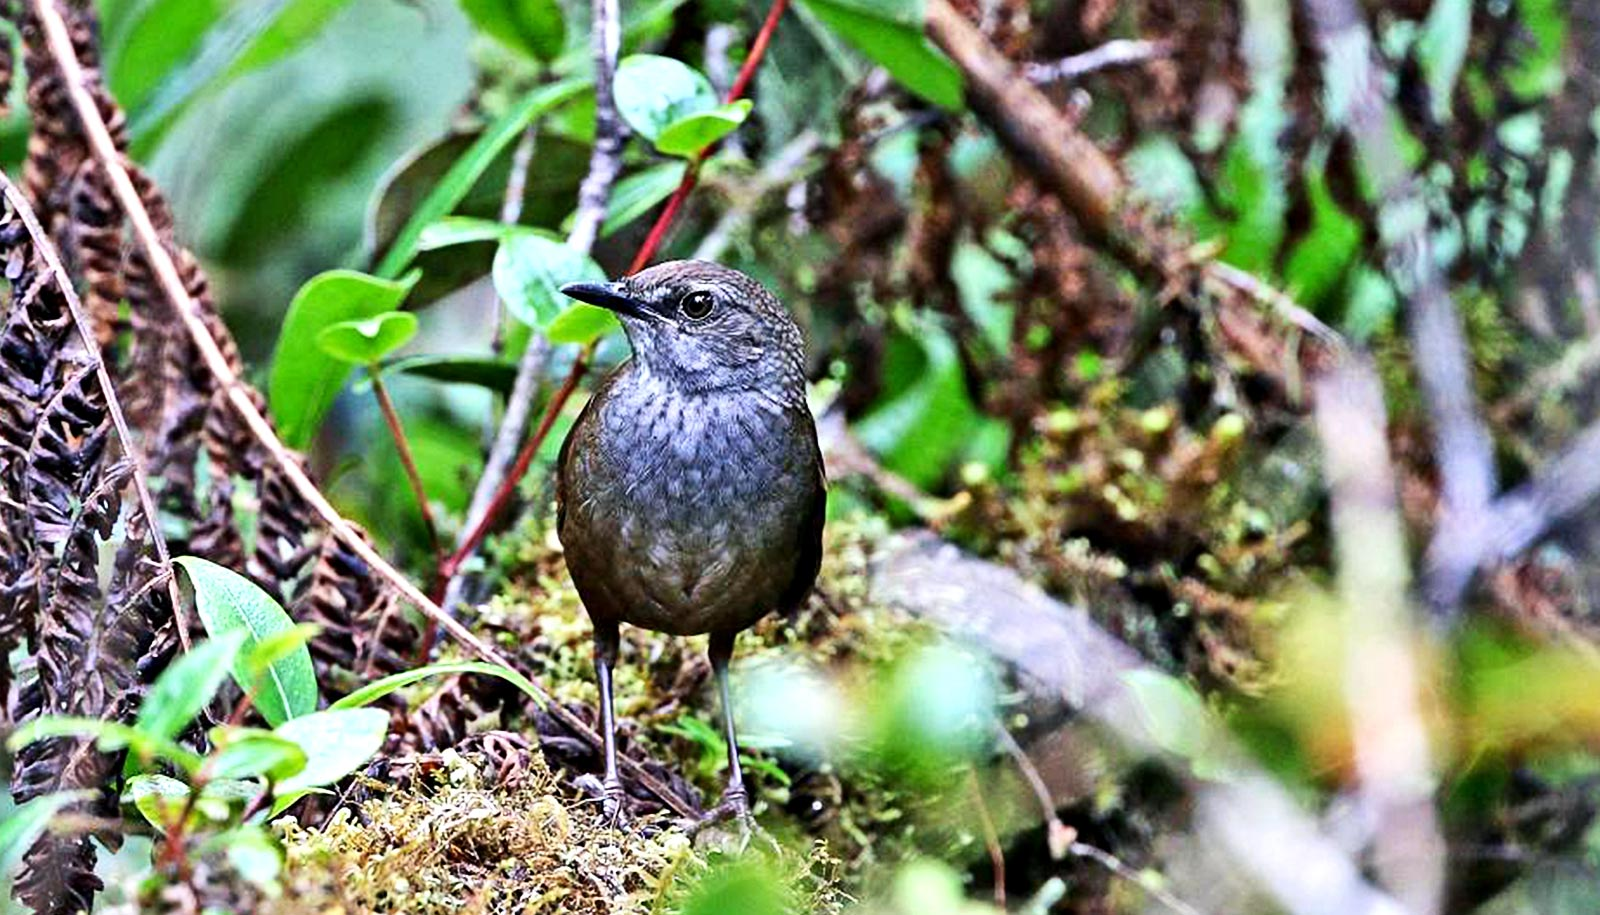 These bird species are new to science